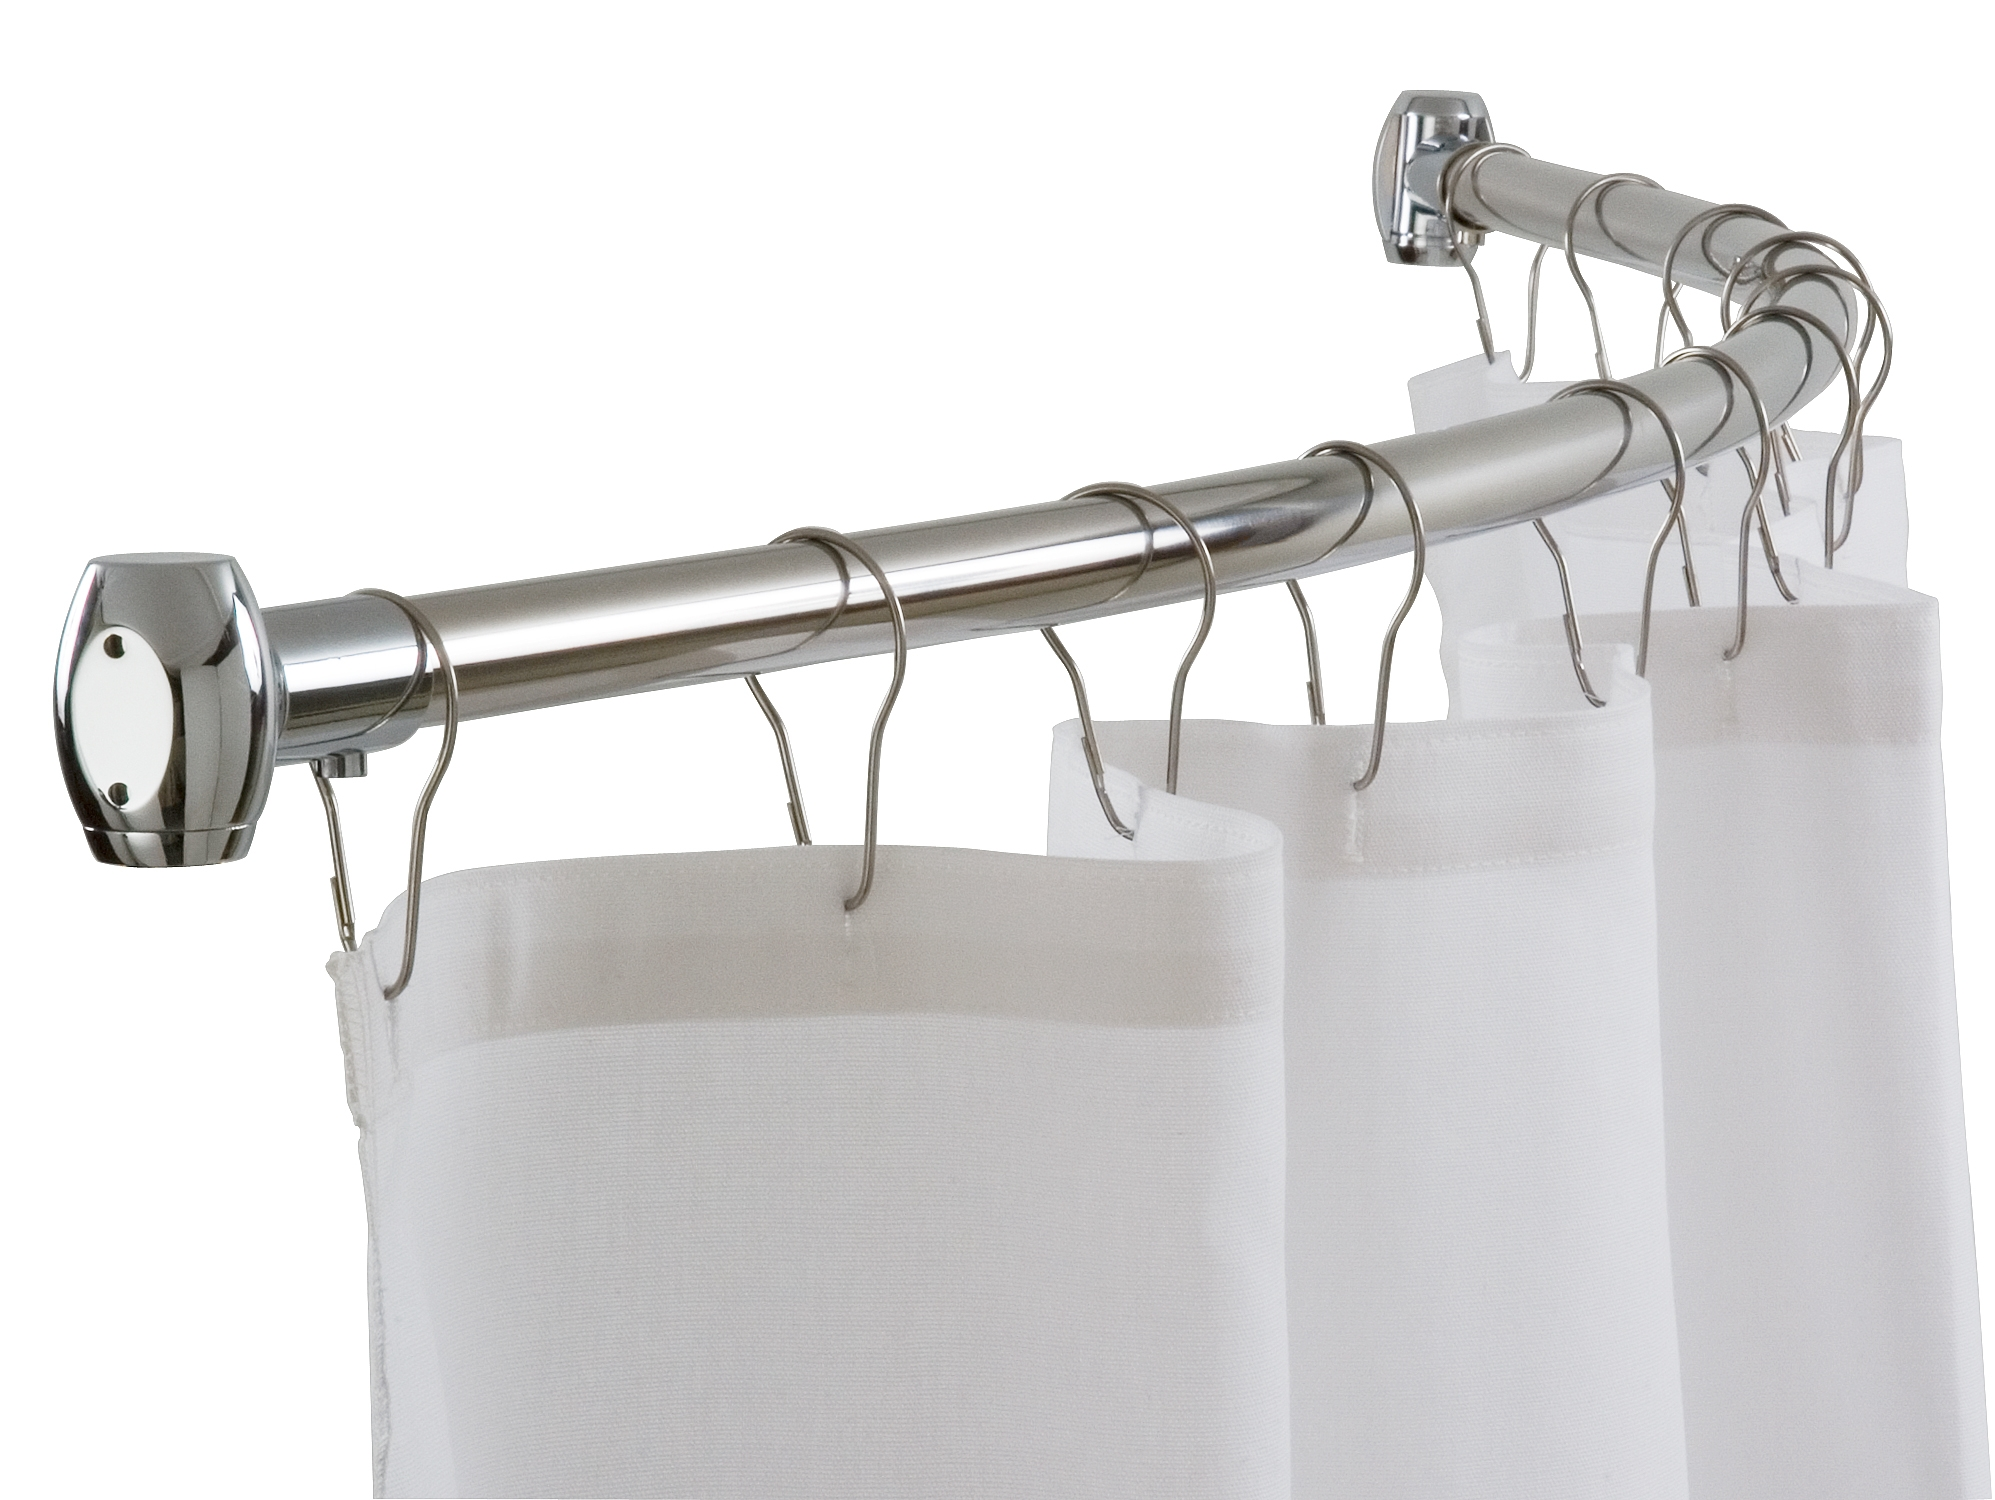 Shower curtain rods - Curved Shower Curtain Rod